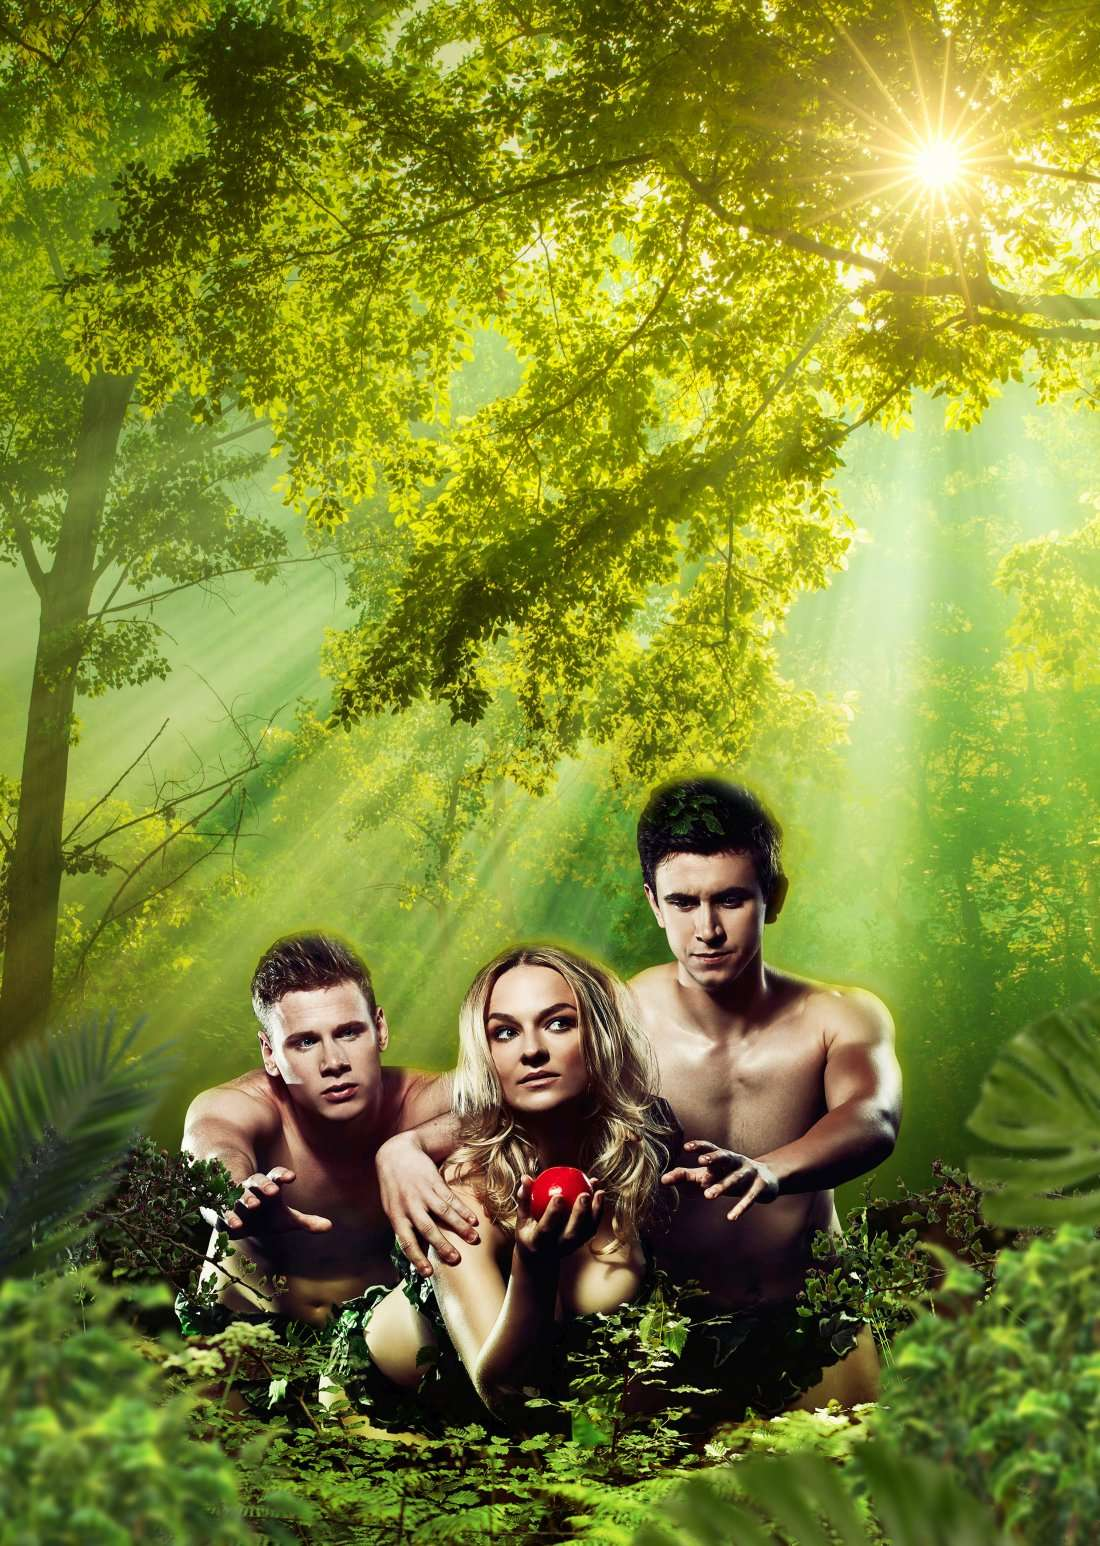 Adam and eve and steve.jpg